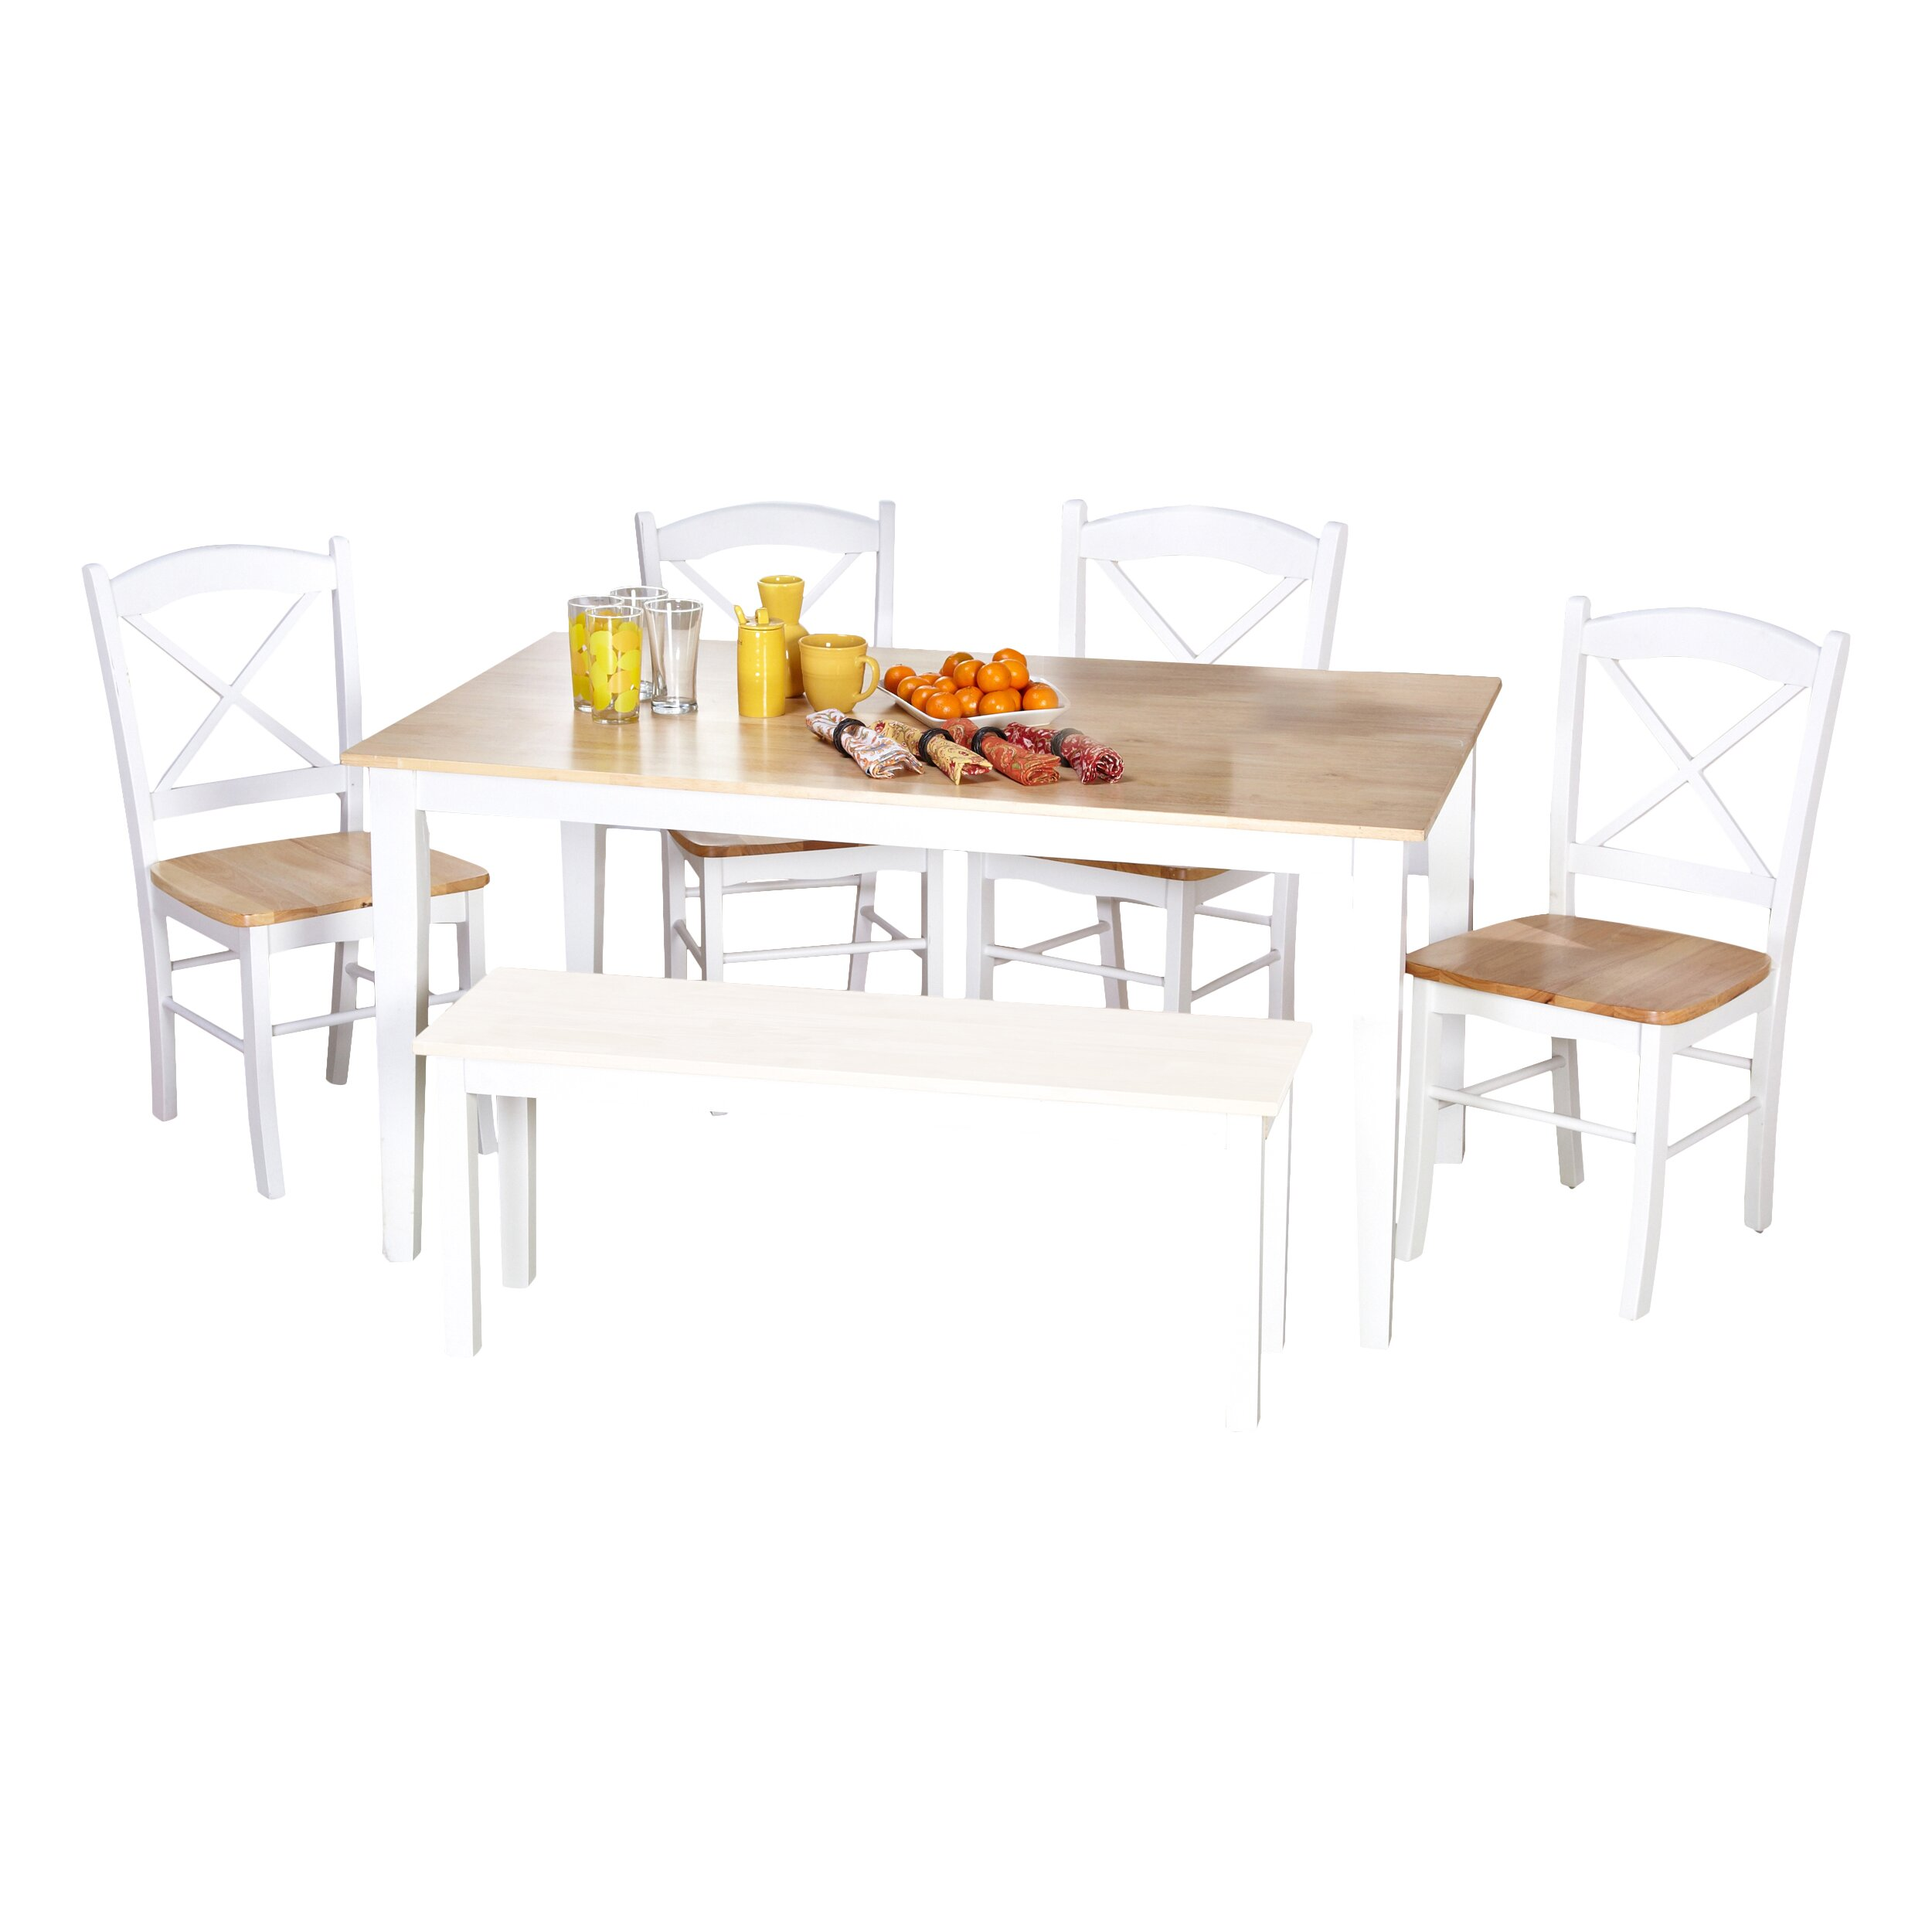 August grove wisteria 6 piece dining set reviews wayfair for Dining room sets 6 piece